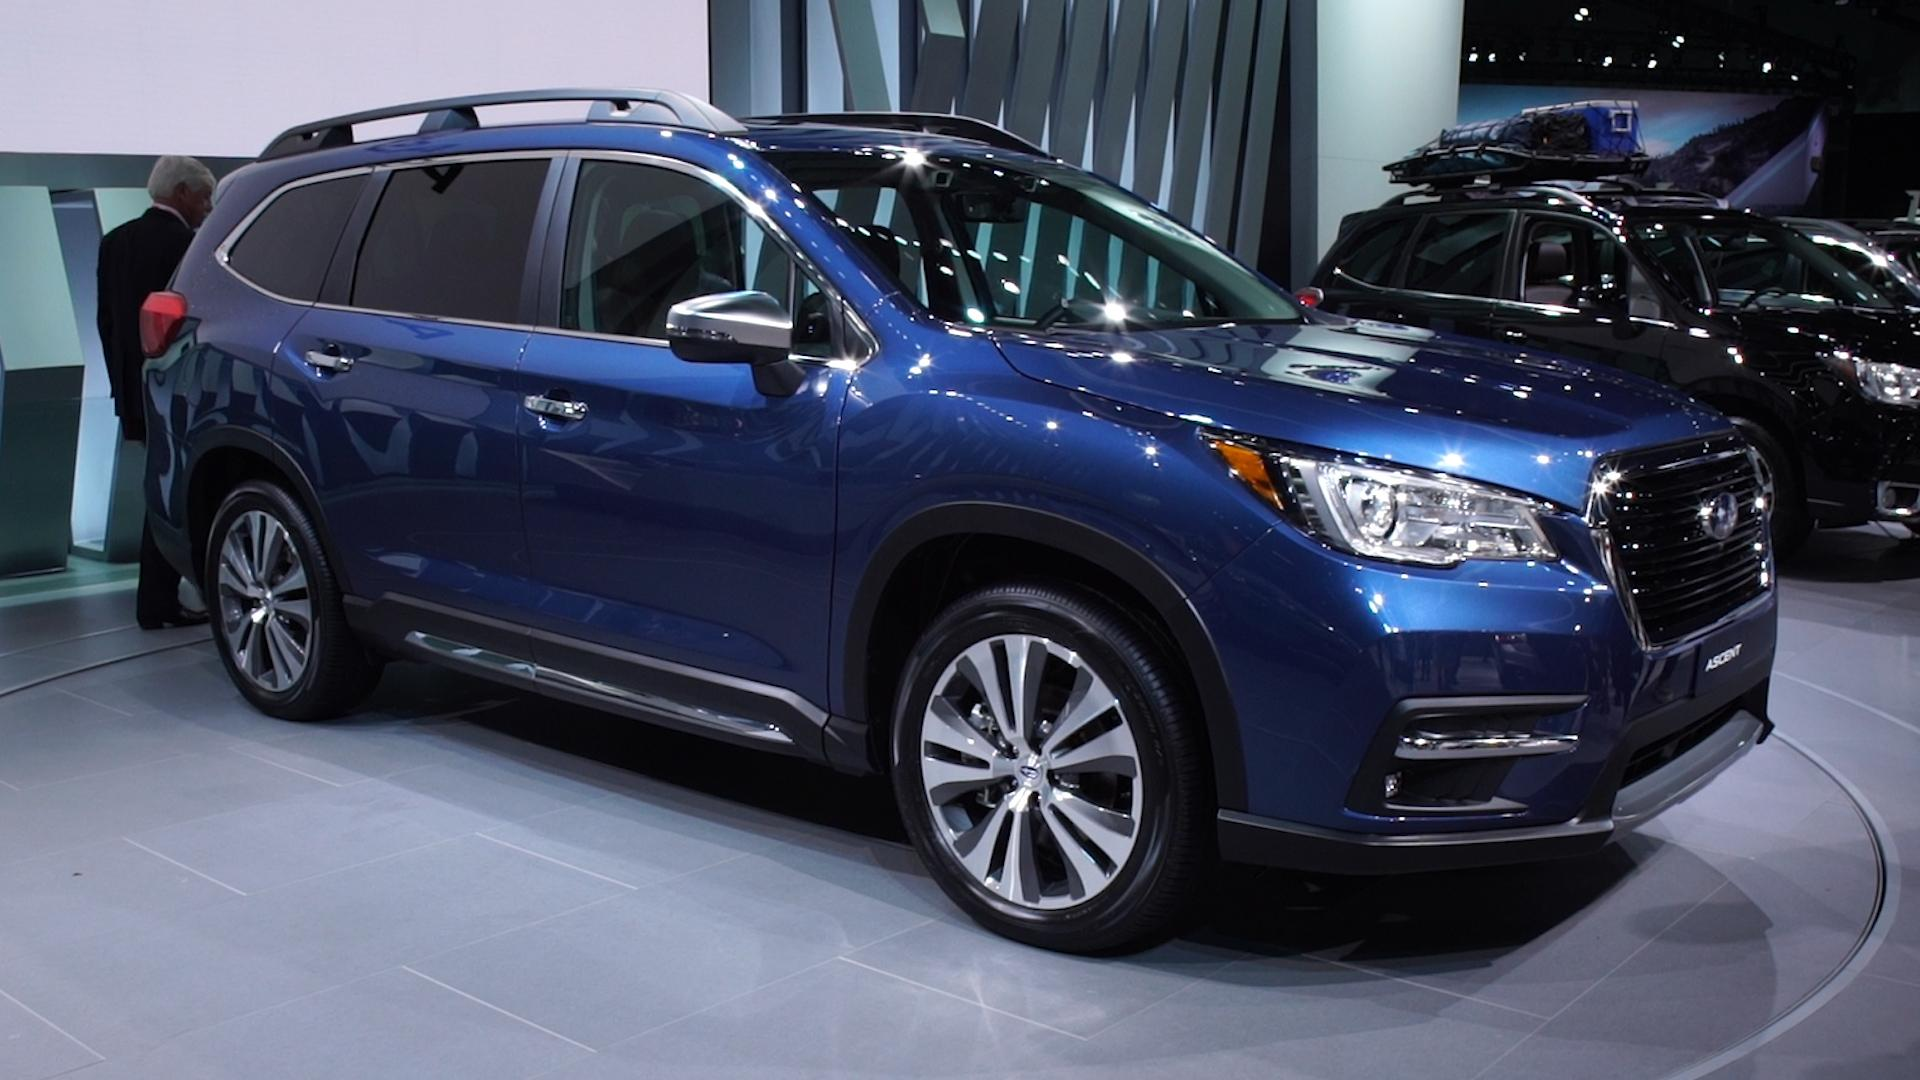 2019 Subaru Ascent Fills an SUV-Sized Hole